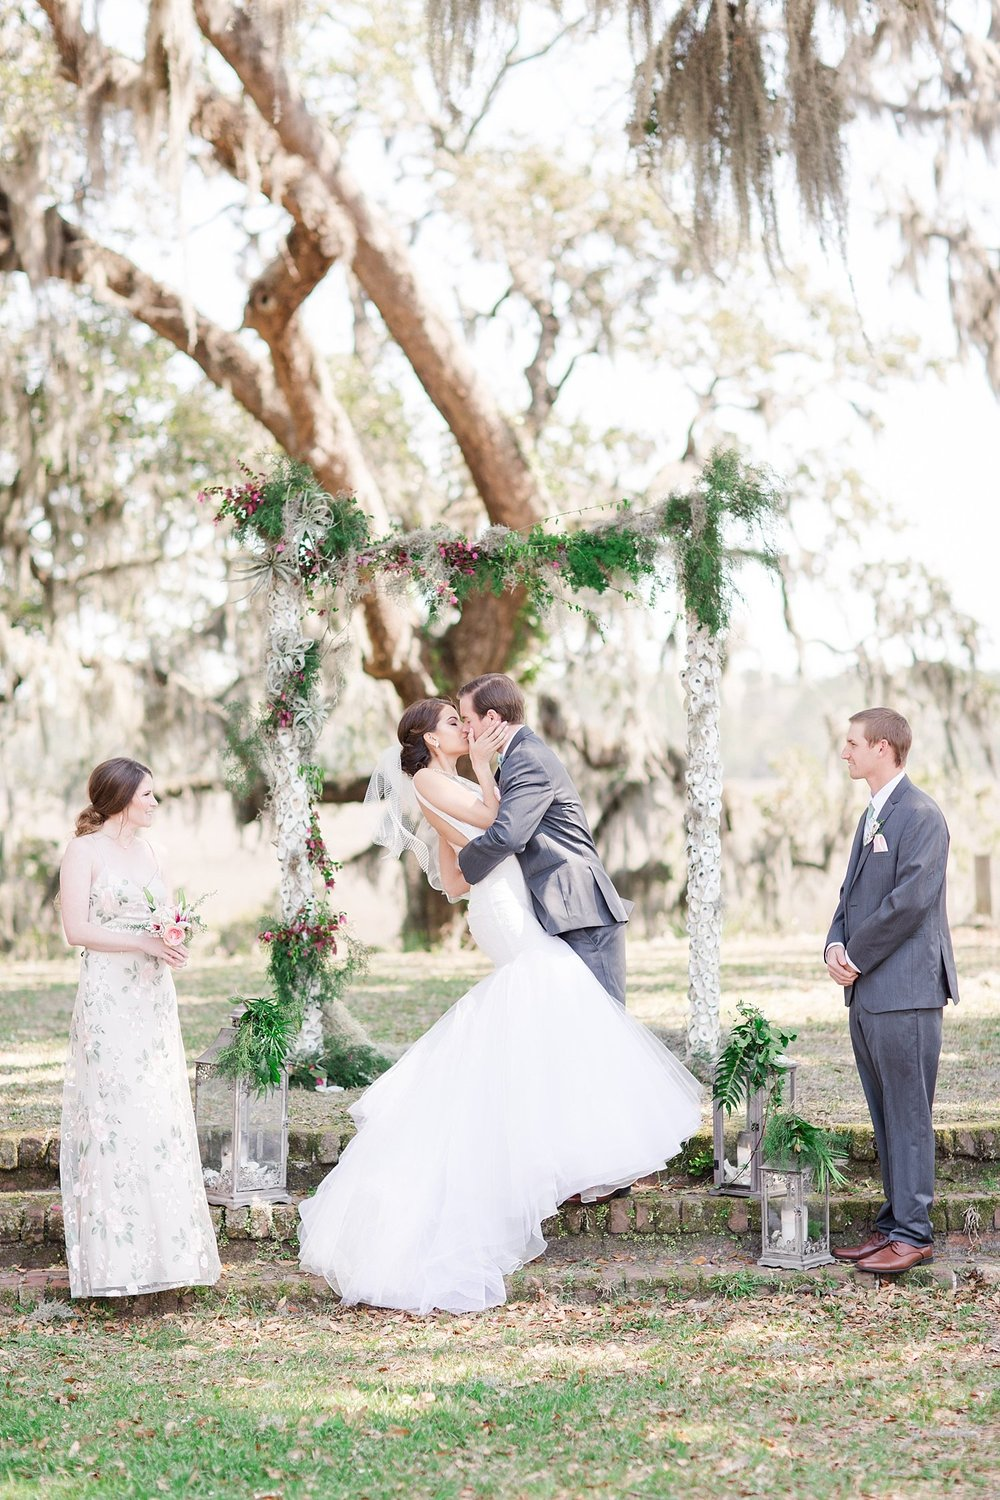 rachel-strickland-photography-katie-may-ivory-and-beau-bridal-boutique-bethesda-academy-wedding-whitfield-chapel-wedding-savannah-bridal-boutique-savannah-weddings-savannah-wedding-savannah-wedding-planner-savannah-bridal-gowns-savannah-bride-112.jpg